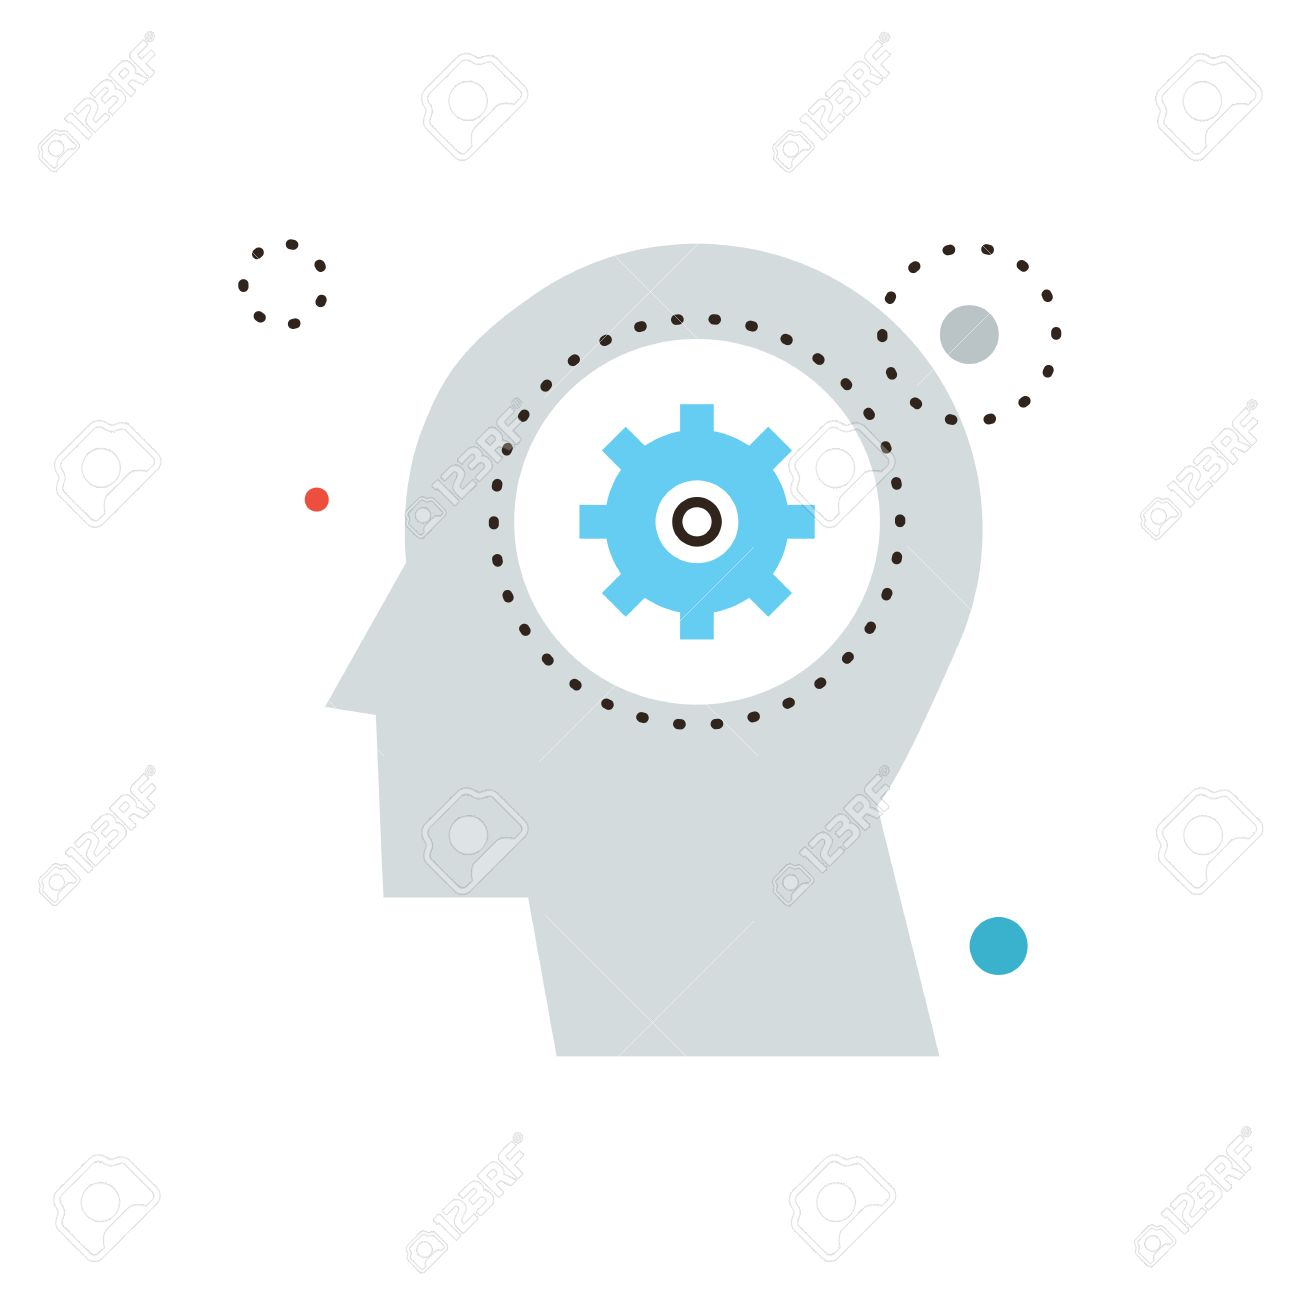 Thin line icon with flat design element of think decision, human head, gain knowledge, work of brain, process of thinking, develop mind. Modern style logo vector illustration concept. - 38864831